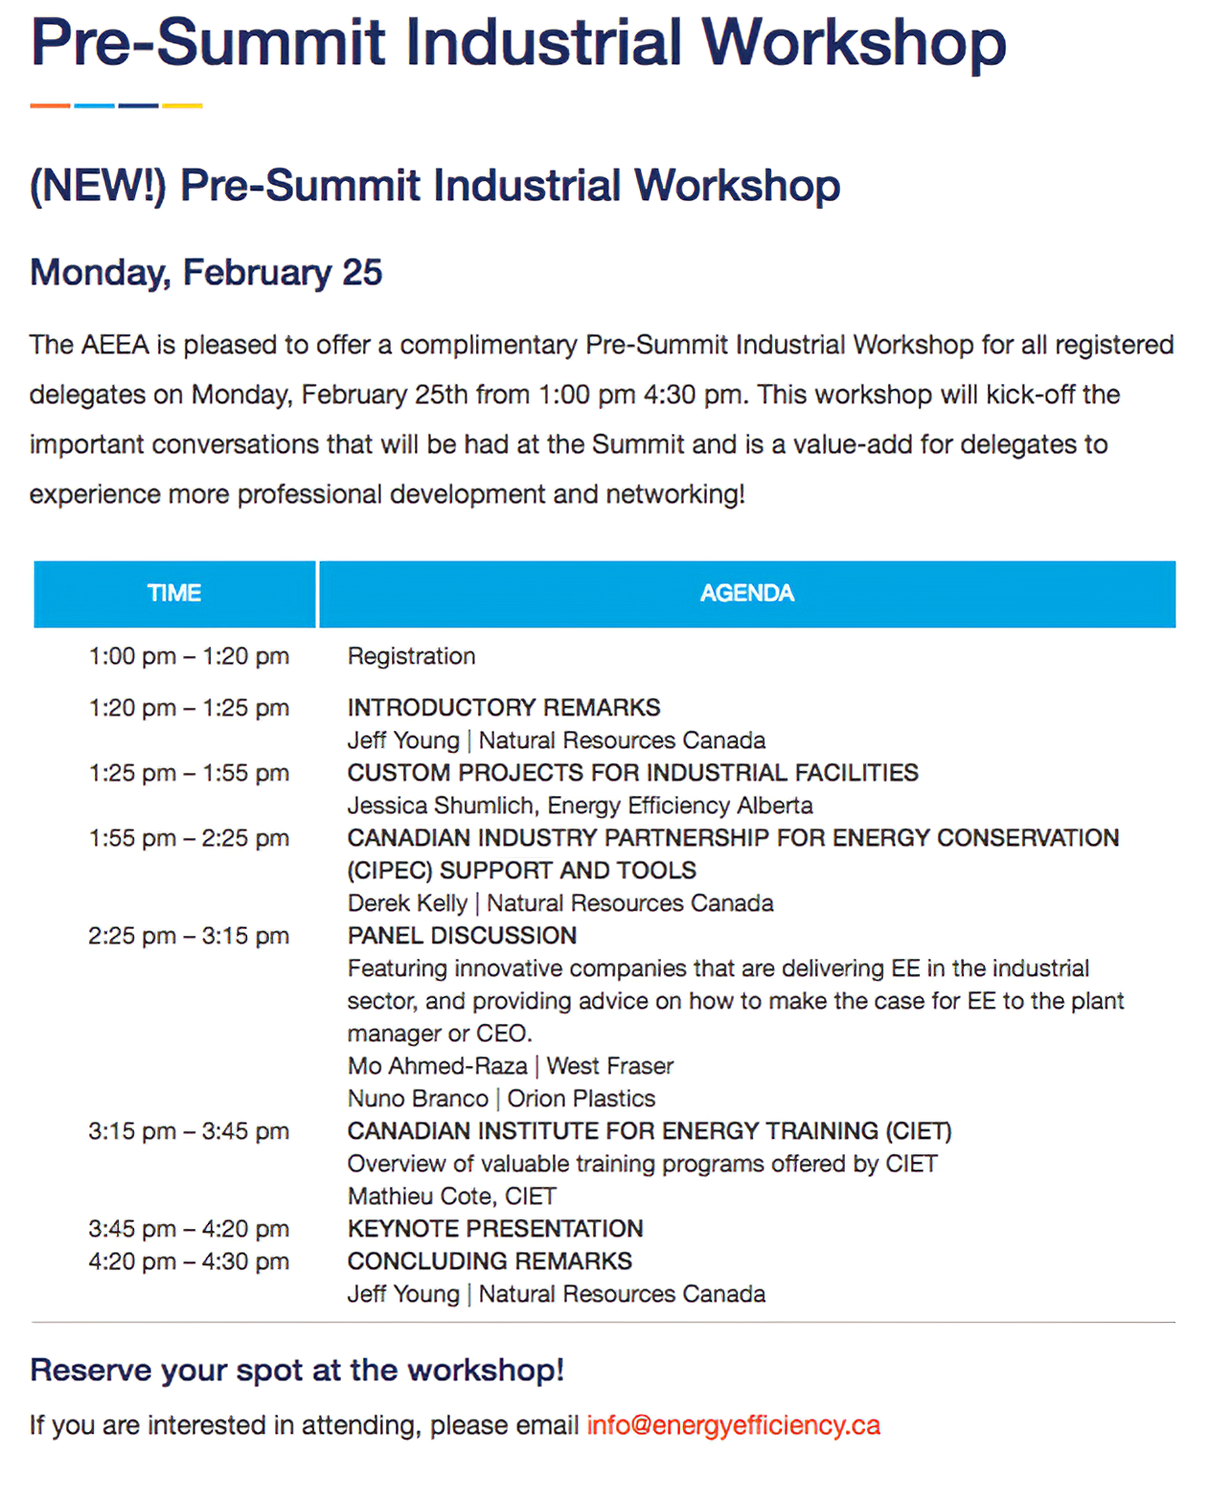 Pre-Summit Workshop Details_1500px.png